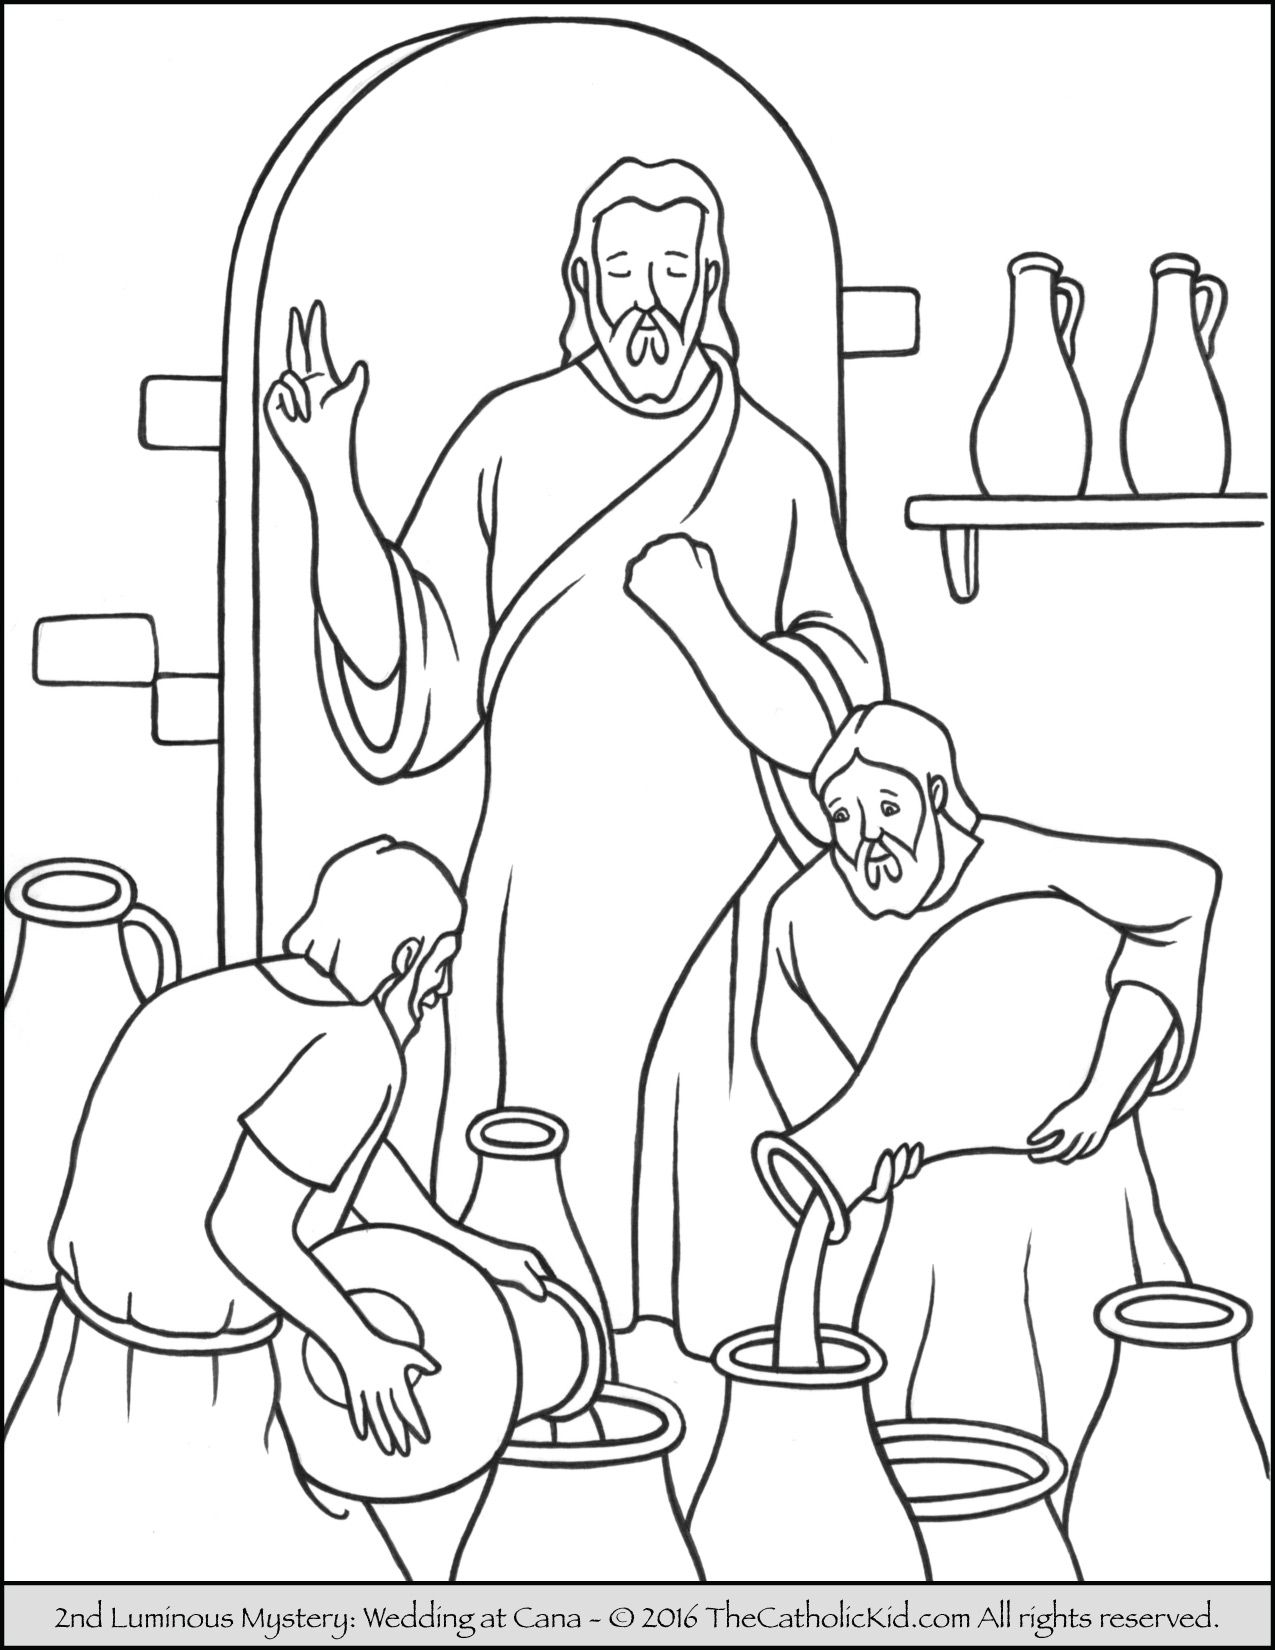 The 2nd Luminous Mystery Coloring Page – Wedding at Cana | Catholic ...